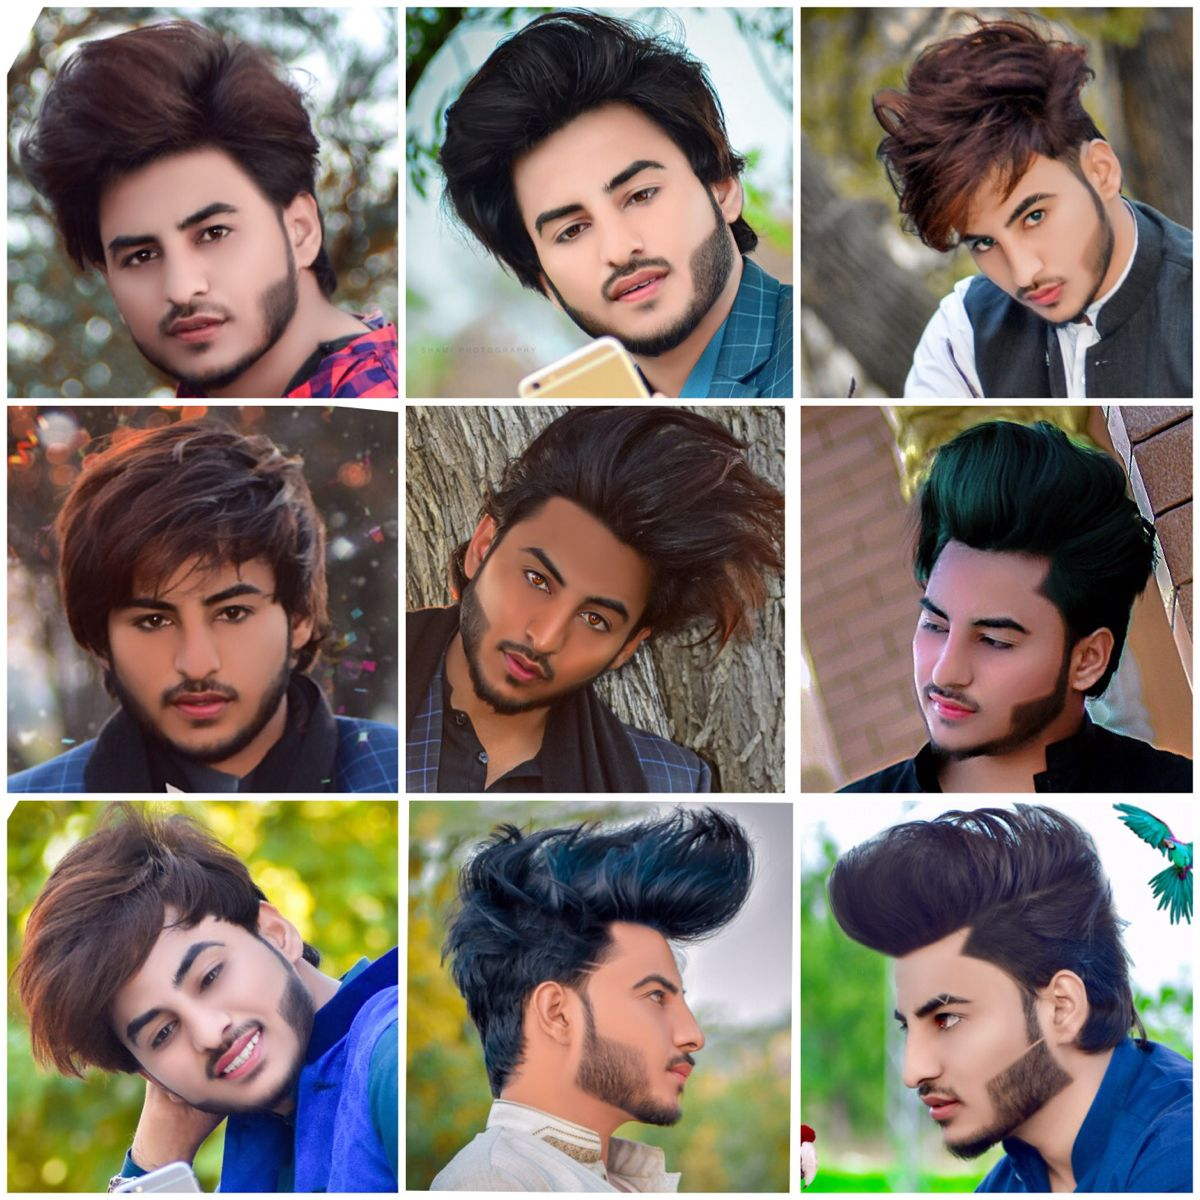 Best Hairstyles For Men And Boys 2020 Guide Men S Hairstyles Today In 2020 Boy Hairstyles Hair Styles Boys Haircuts